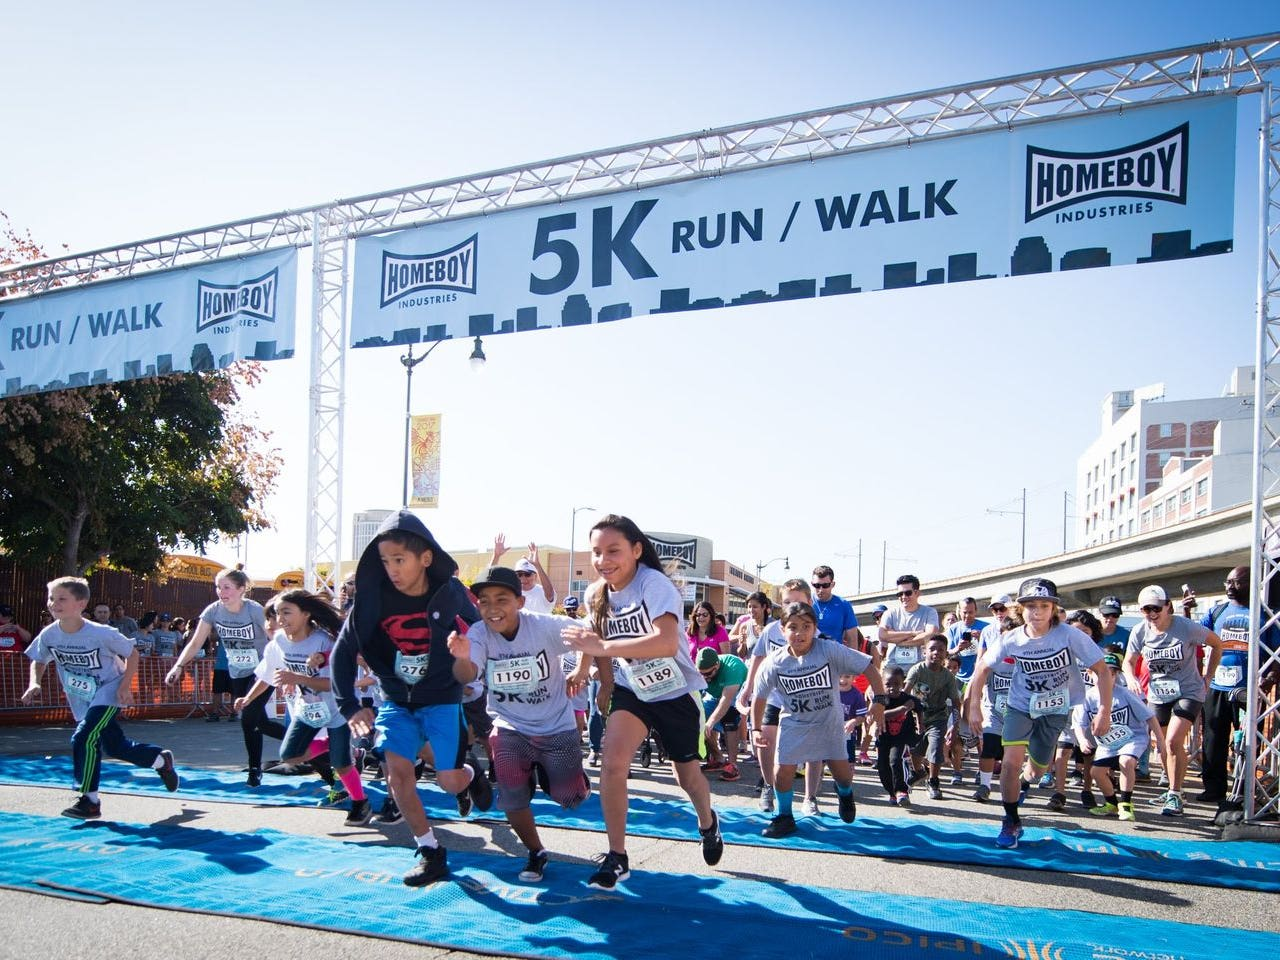 Main image for event titled Homeboy Industries' 12th Annual 5K Run/Walk